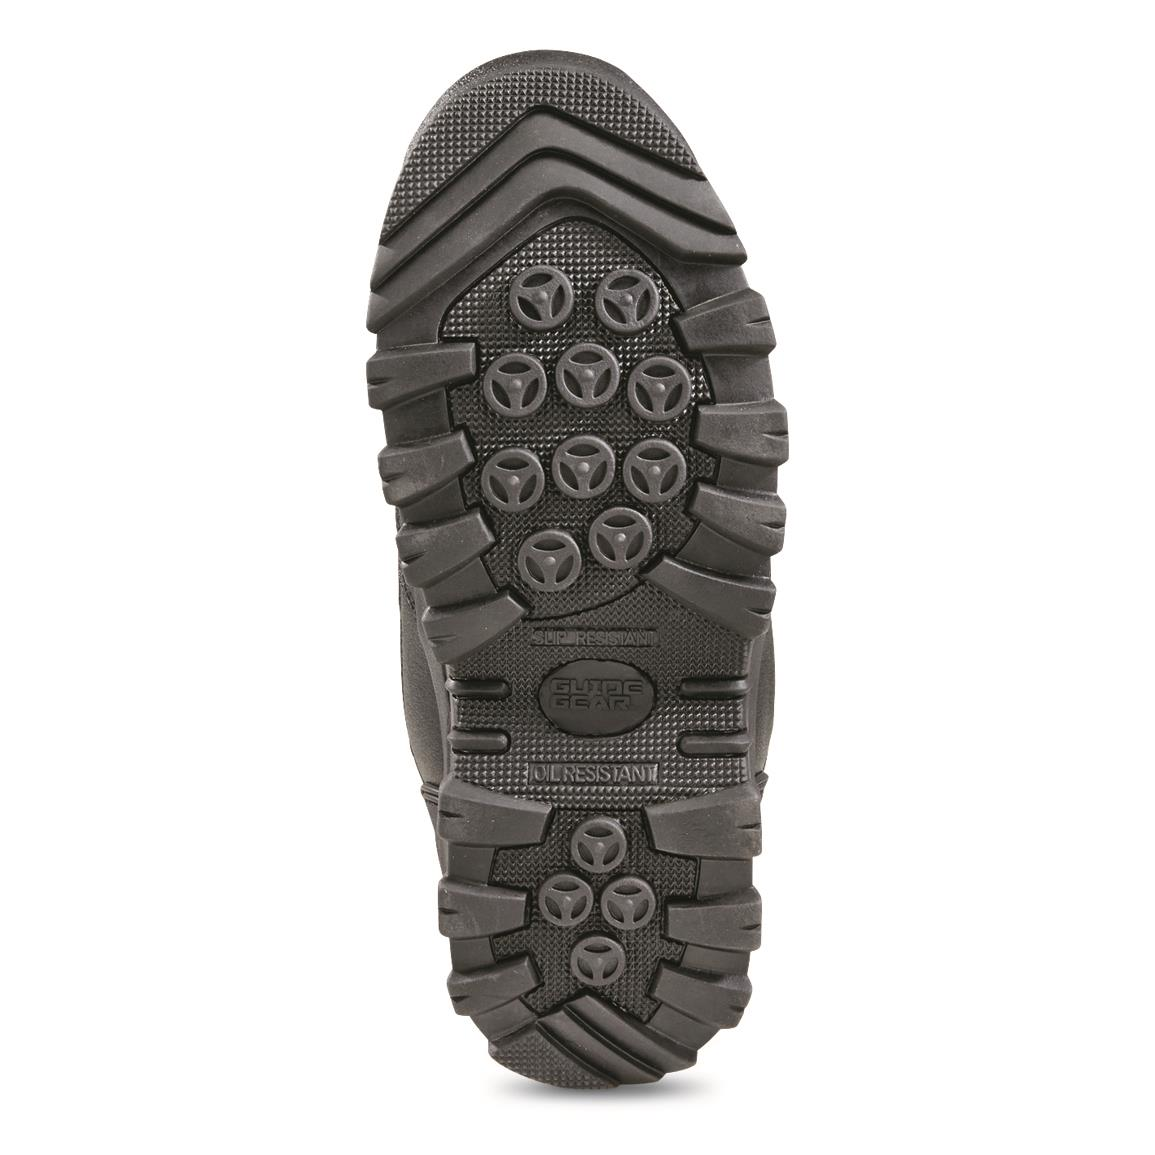 Sure-grip rubber lug outsole is oil resistant